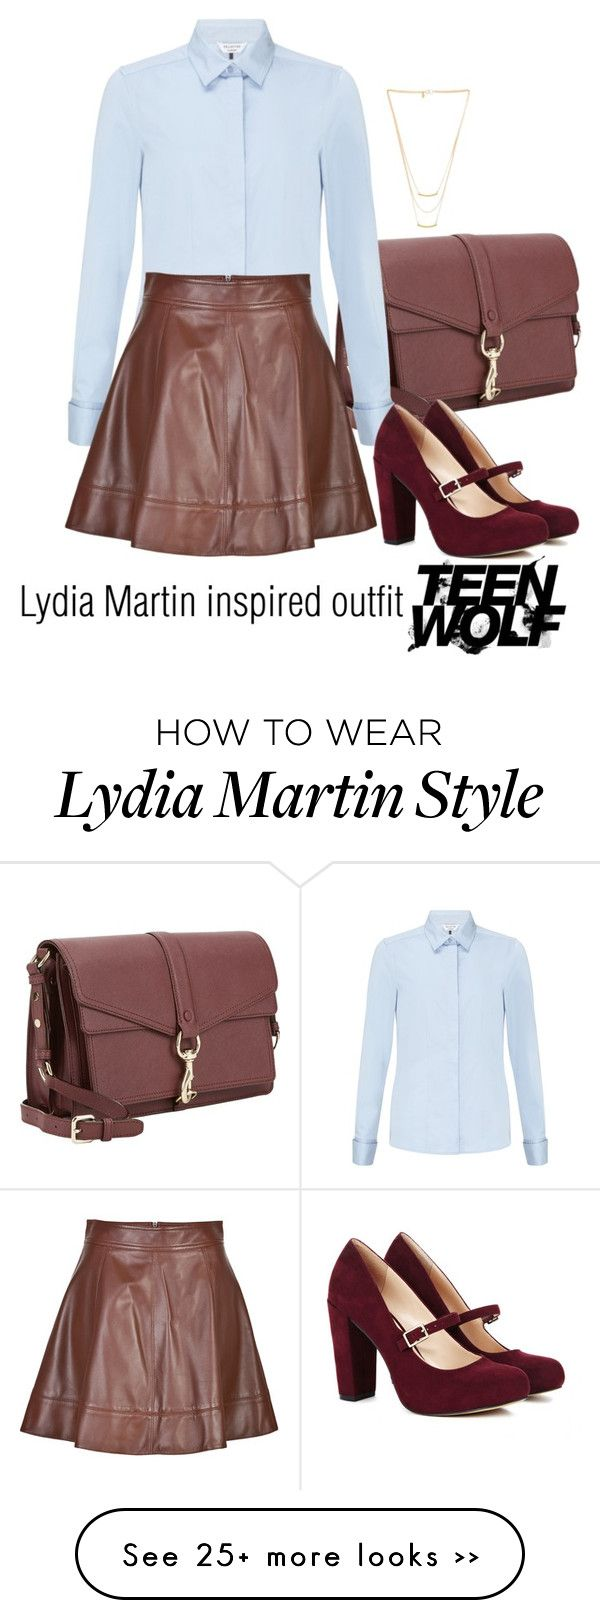 """""""Lydia Martin inspired outfit/TW"""" by tvdsarahmichele on Polyvore"""